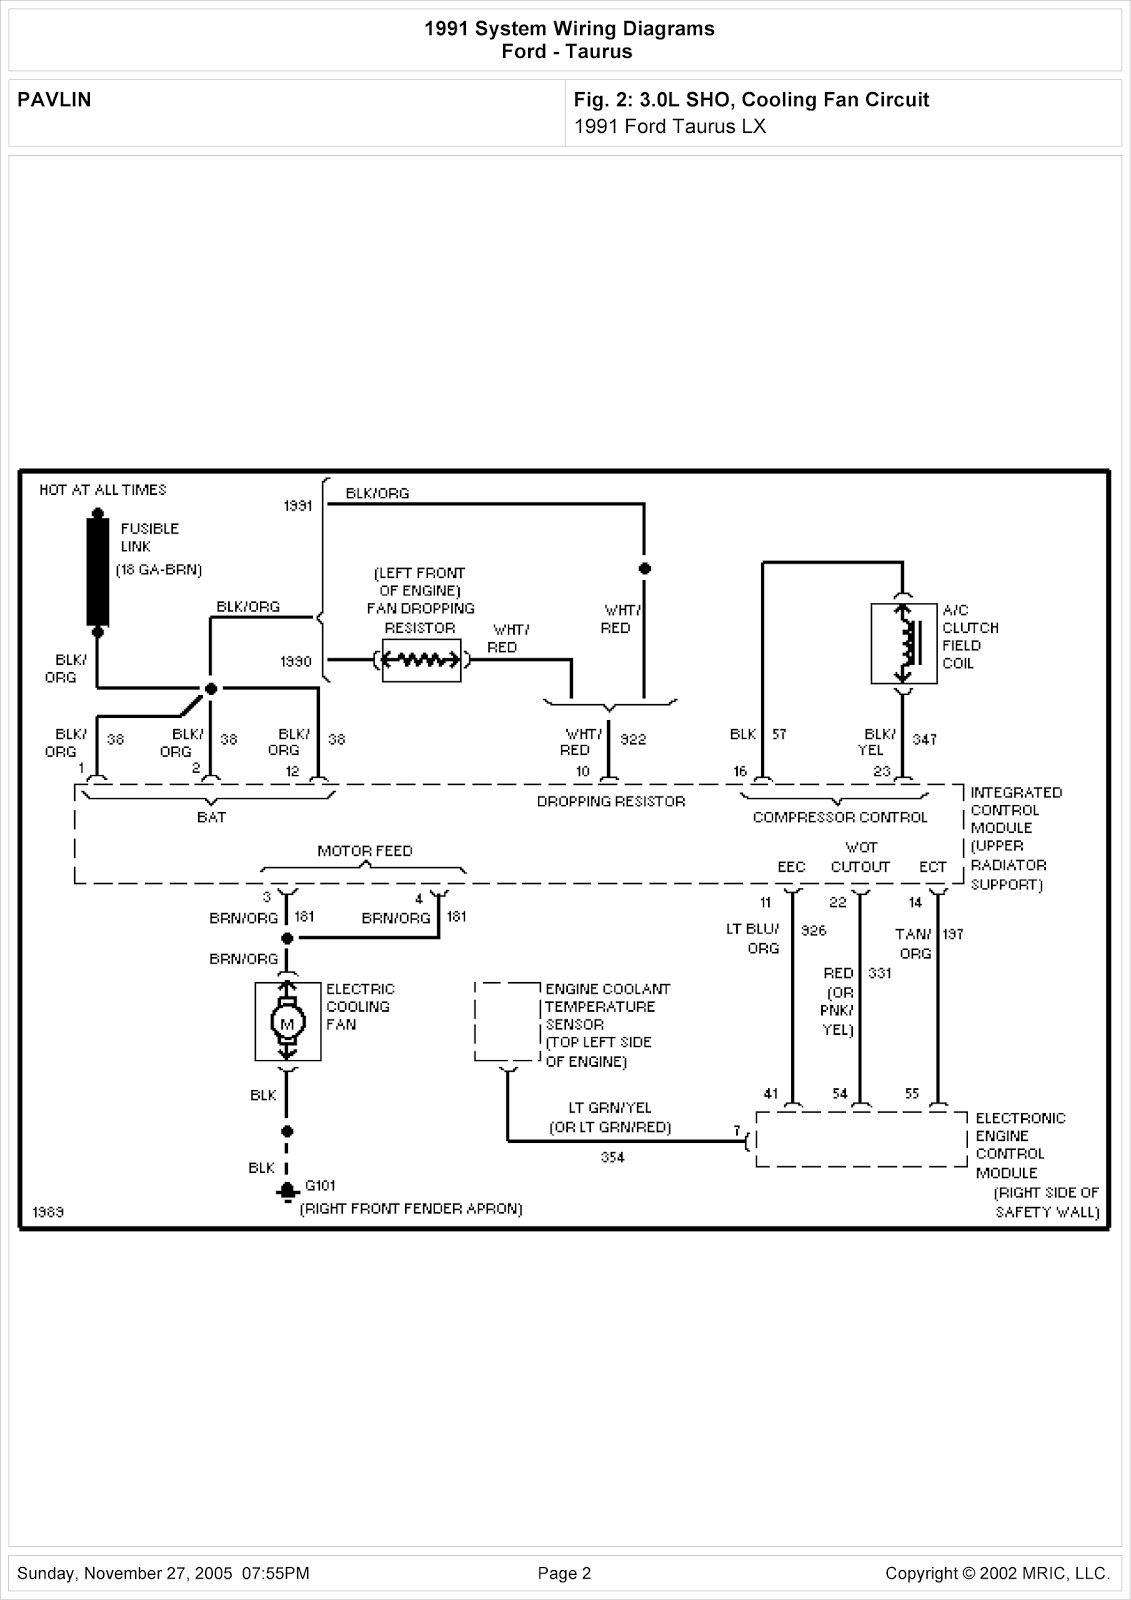 1999 Ford Taurus Wiring Diagram Search For Diagrams Se Window System Cooling Fan Circuit Fuse Box Radio